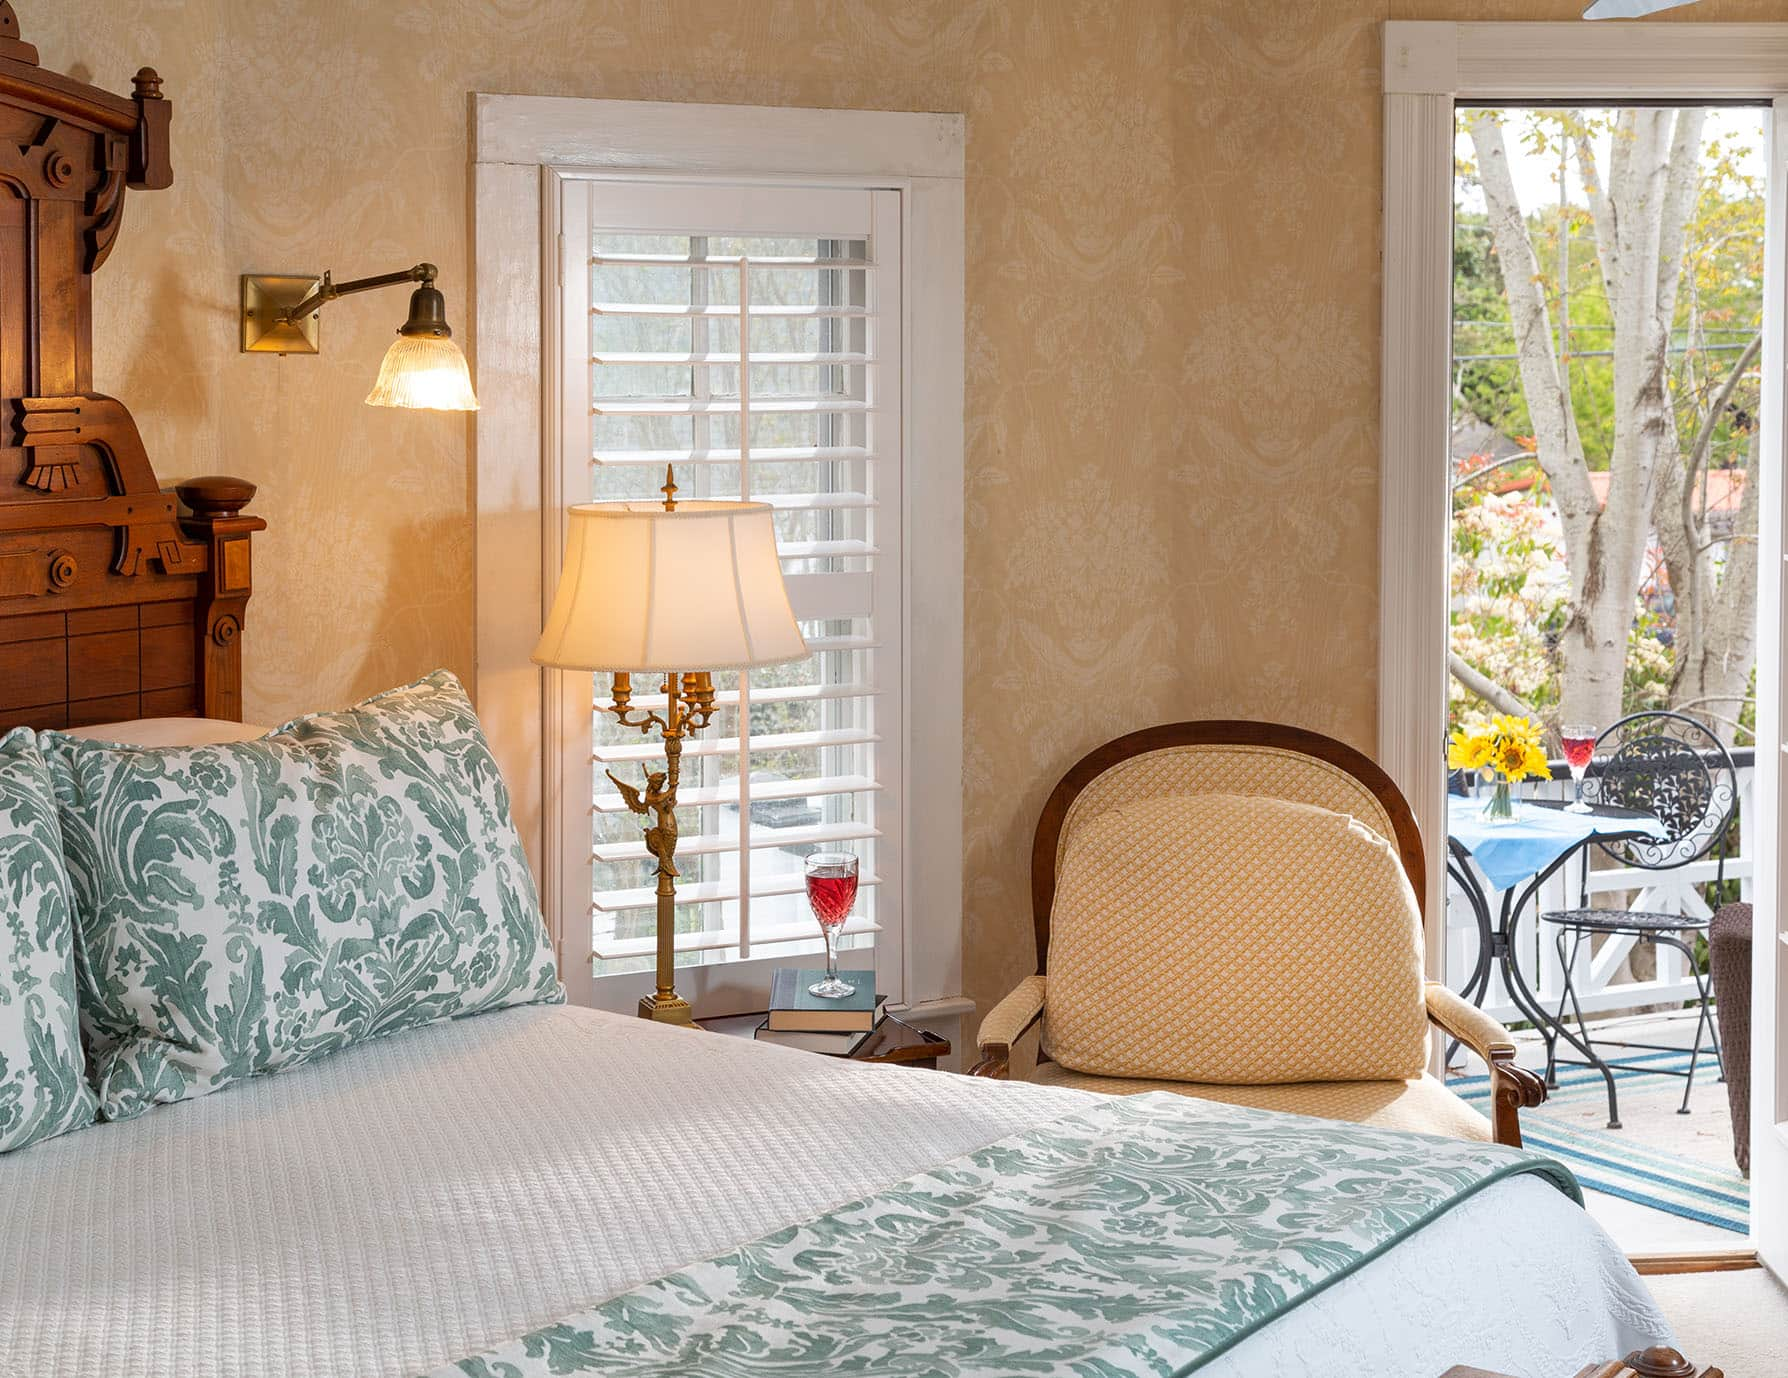 Queen Bed, Fireplace and Private Patio at Our Roanoke Island B&B